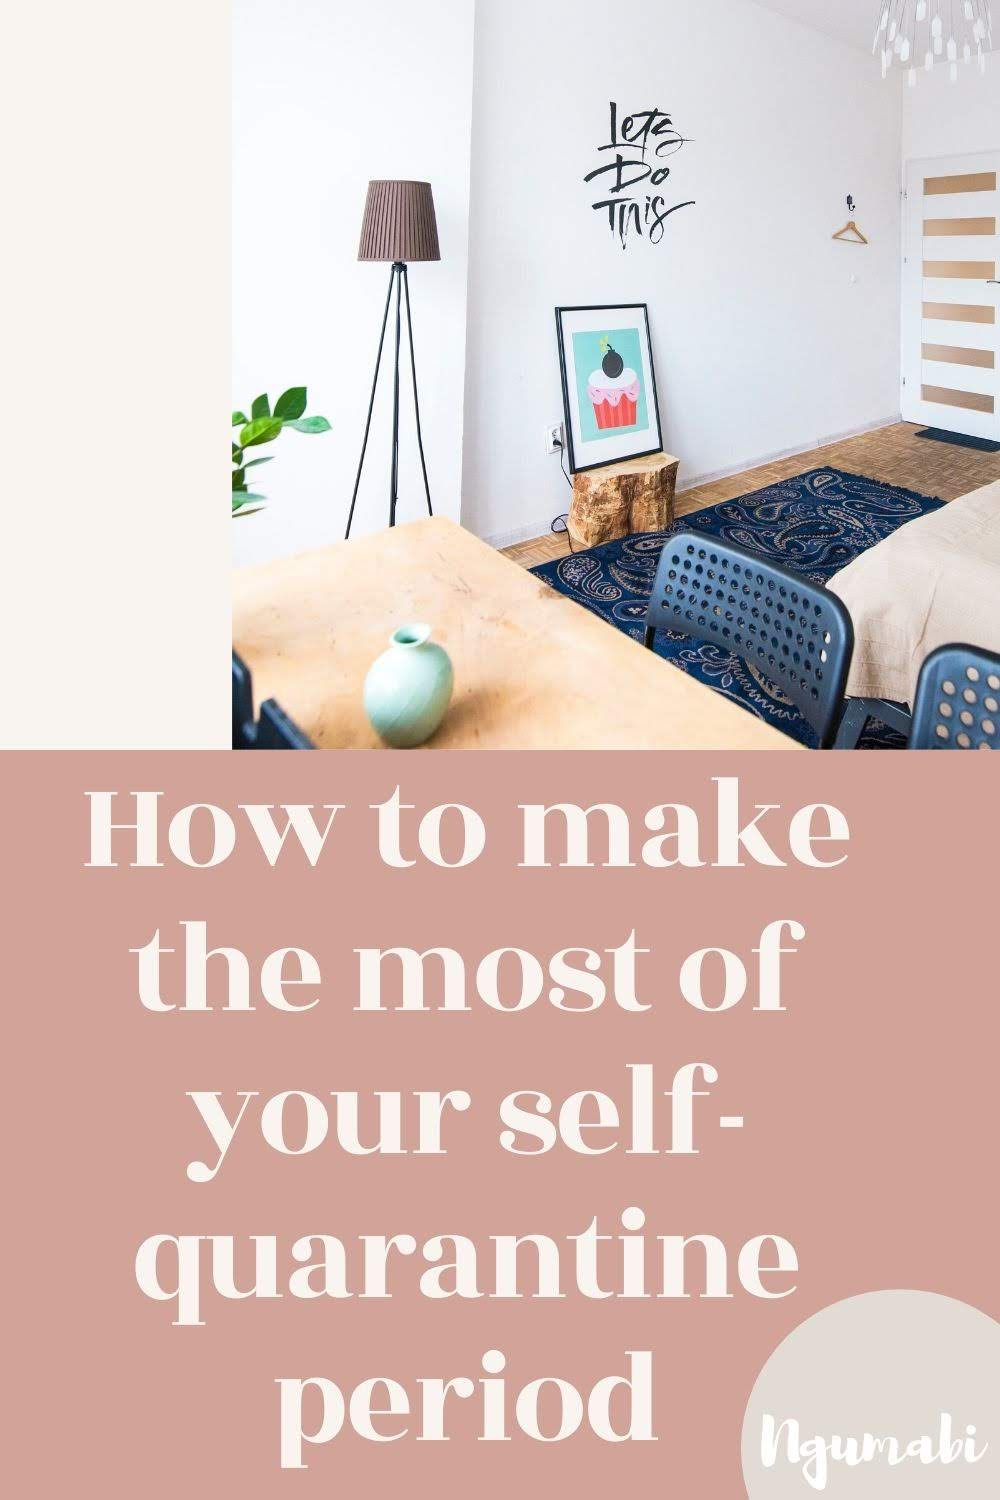 How to make the most of your self-quarantine period